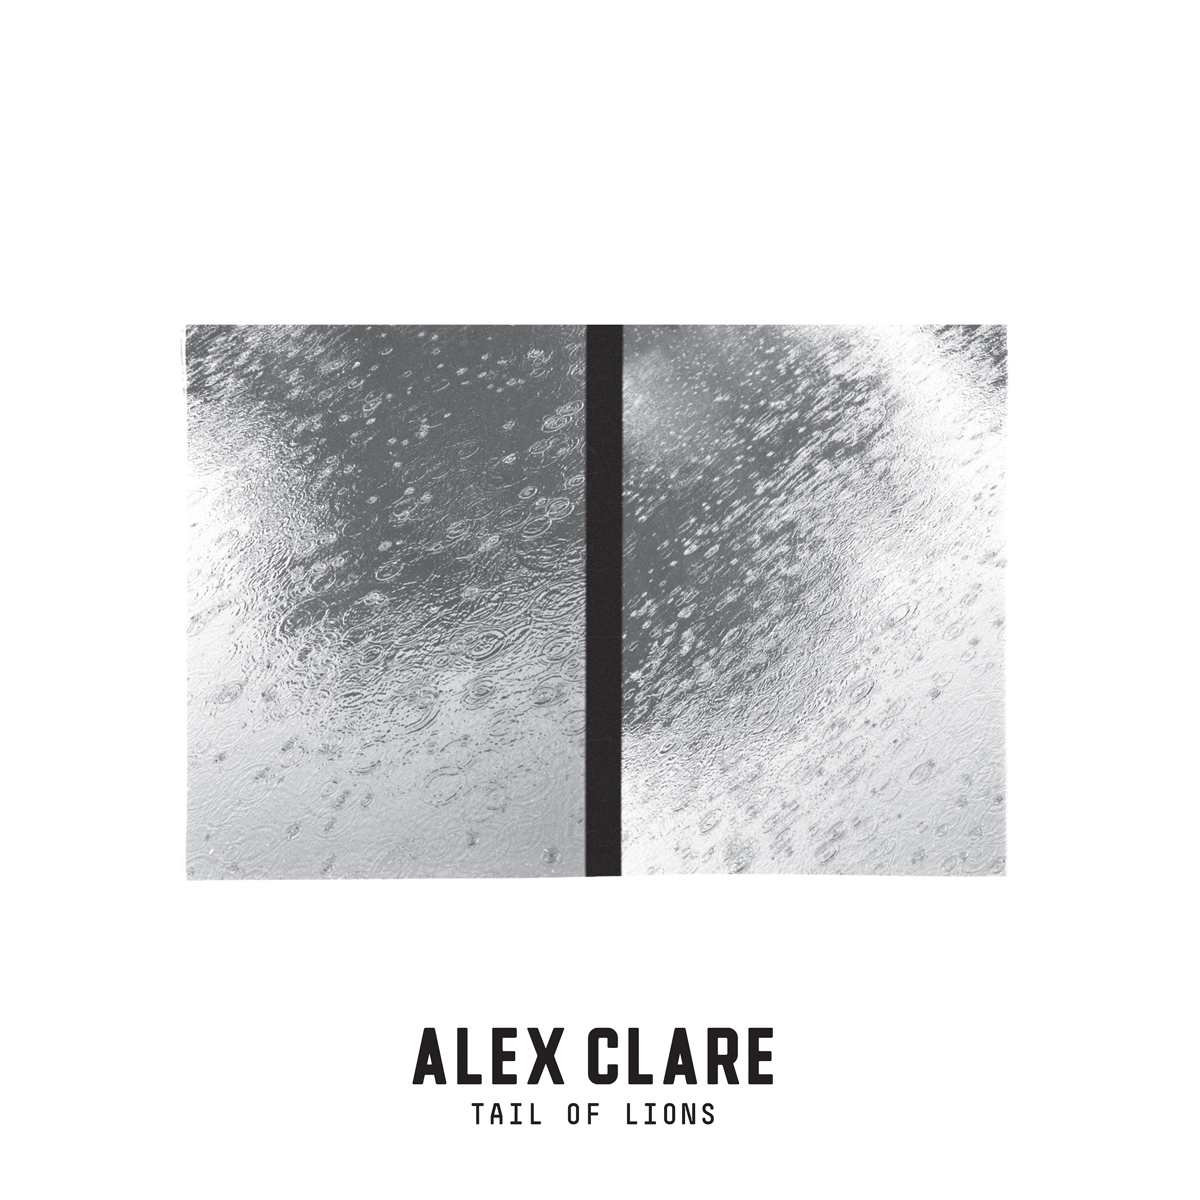 The official website for Alex Clare